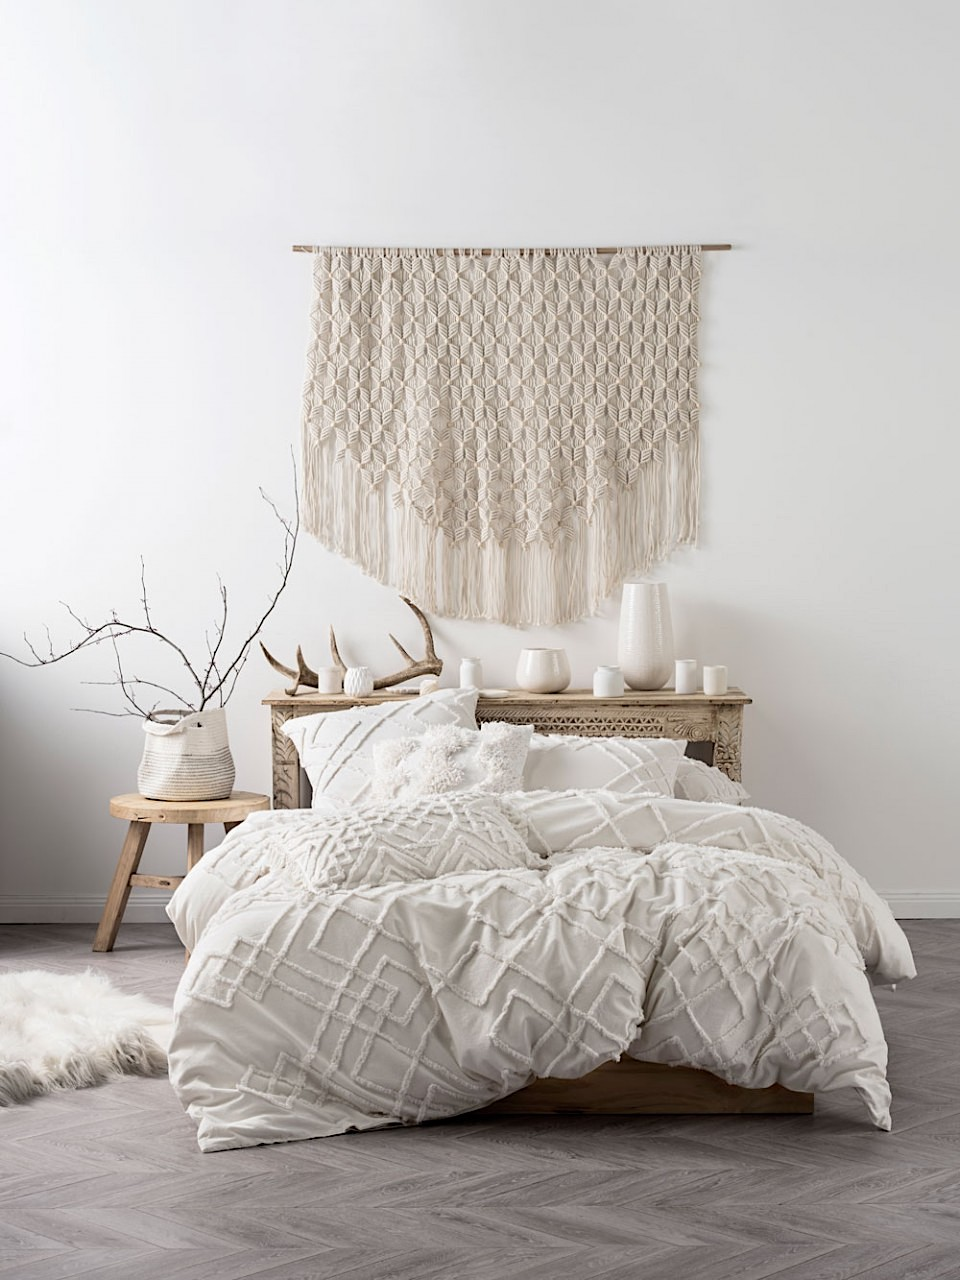 Beautiful  we always remend choosing a pillow with smoothing memory foam or soft bamboo so your bed is as soft and inviting as it looks